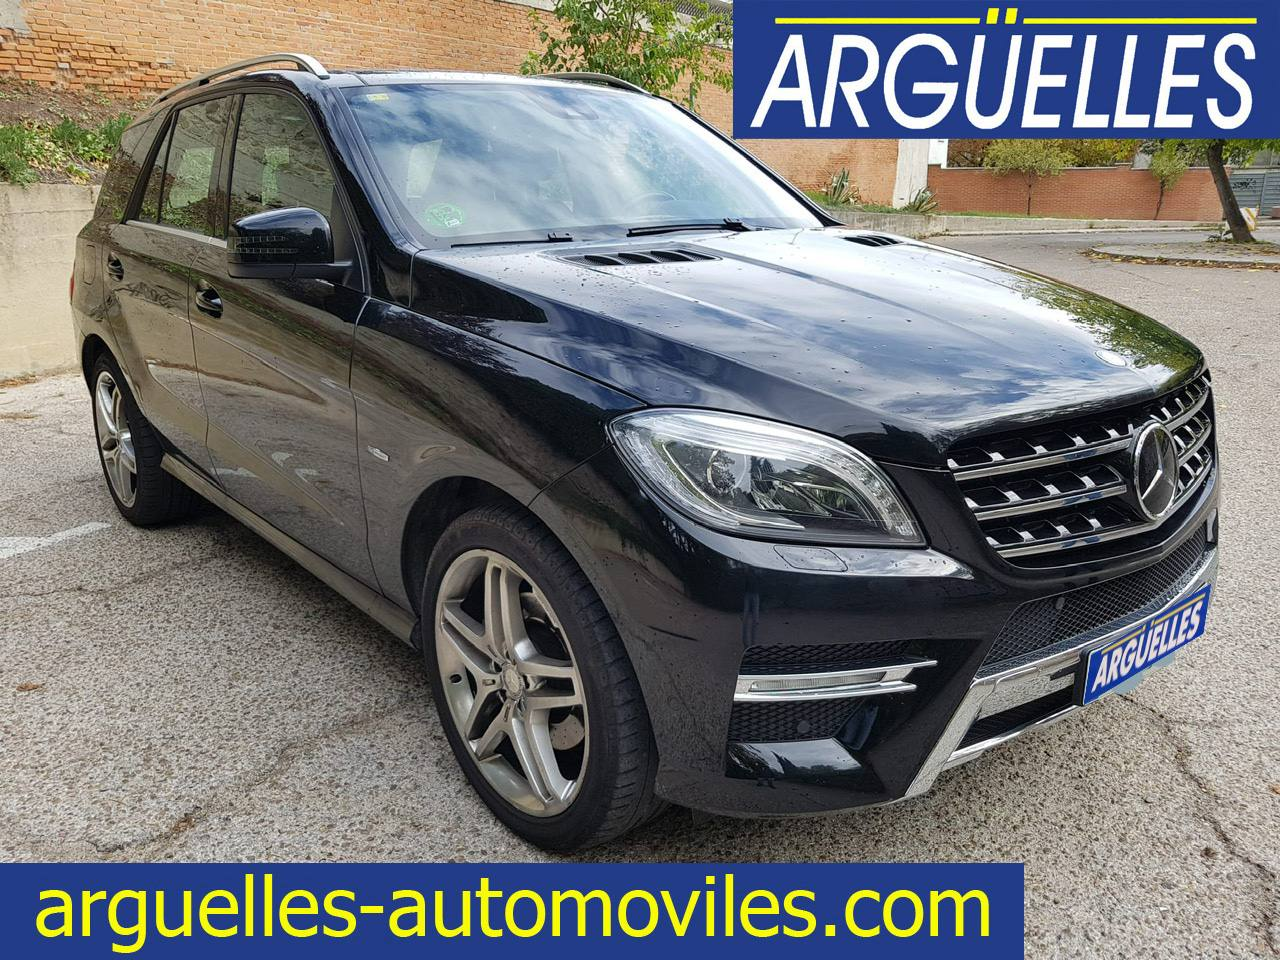 Mercedes Benz ML 350 d AMG FULL EQUIPE 258cv 4Matic